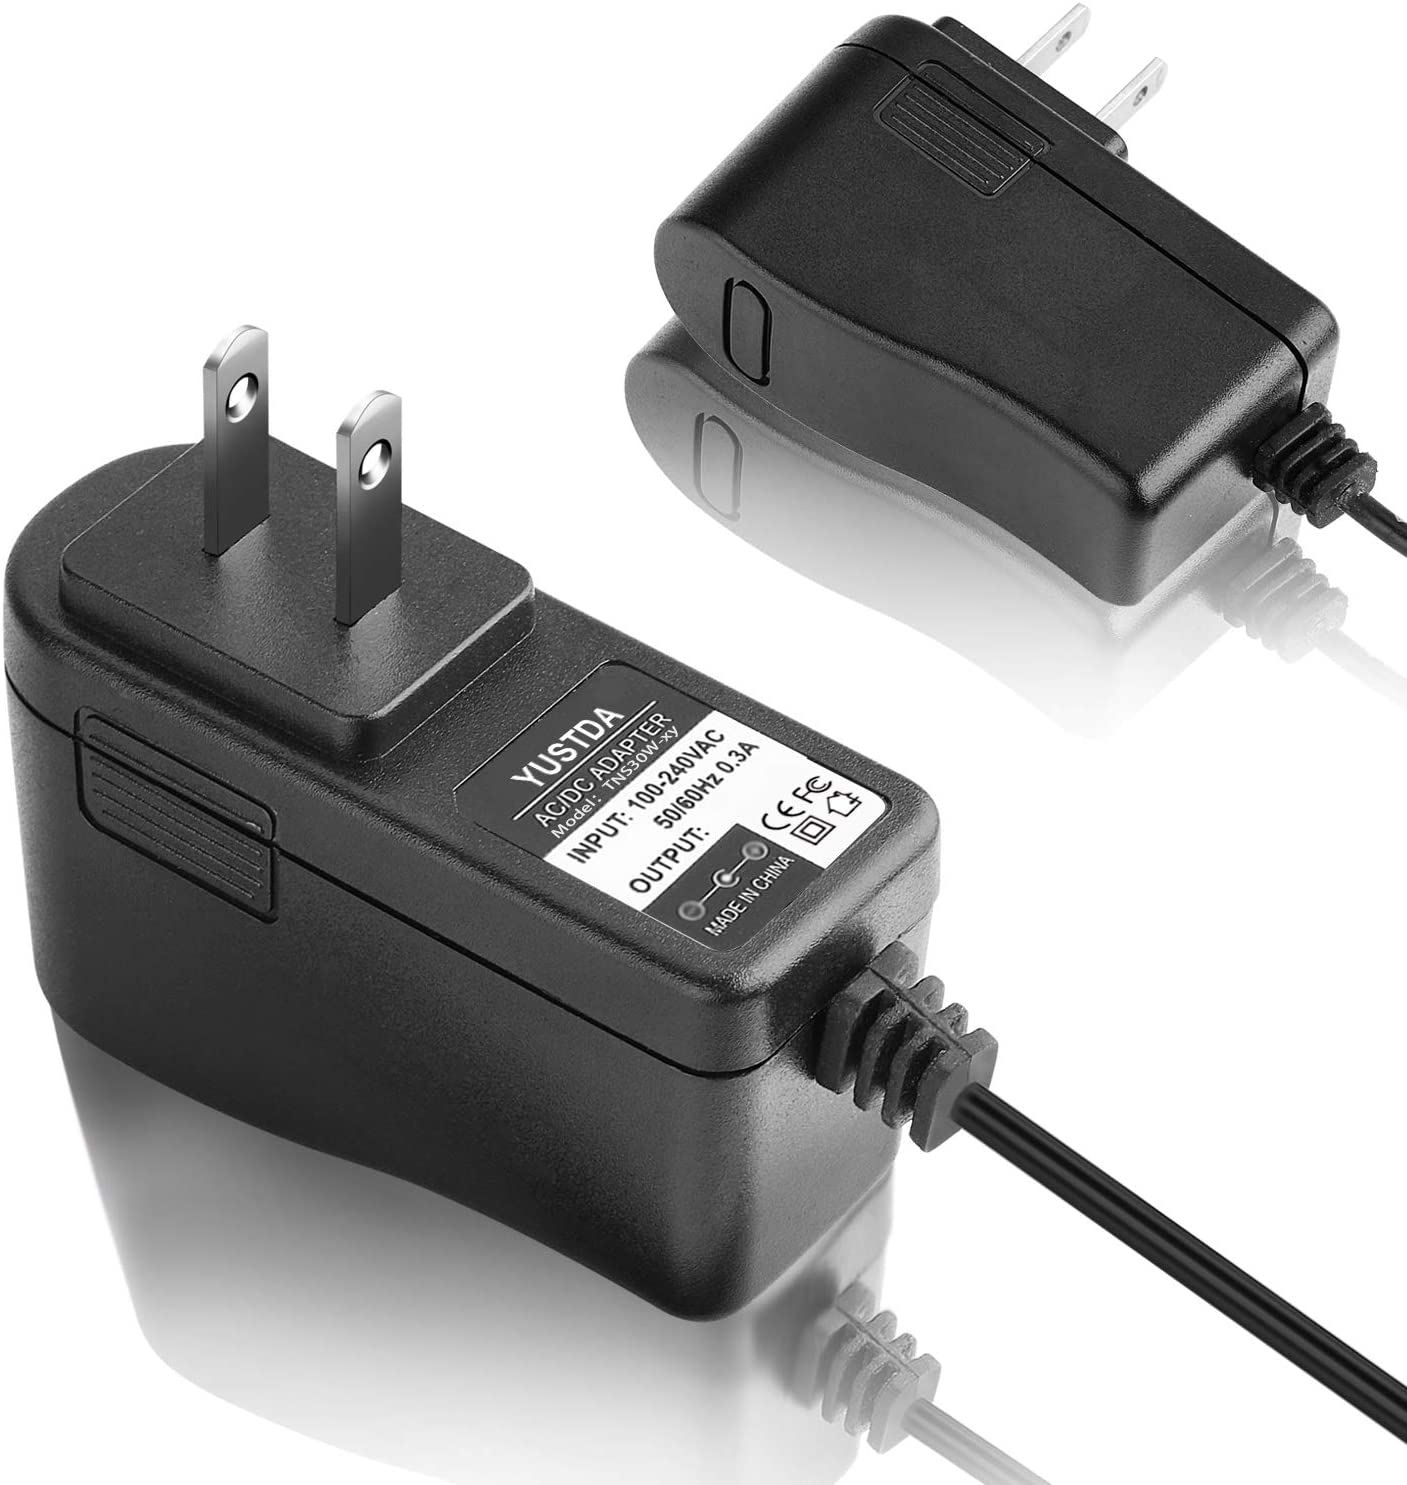 yan AC//DC Power Adapter Wall Charger for Radio Shack Realistic HTX-404 19-1140 Radio